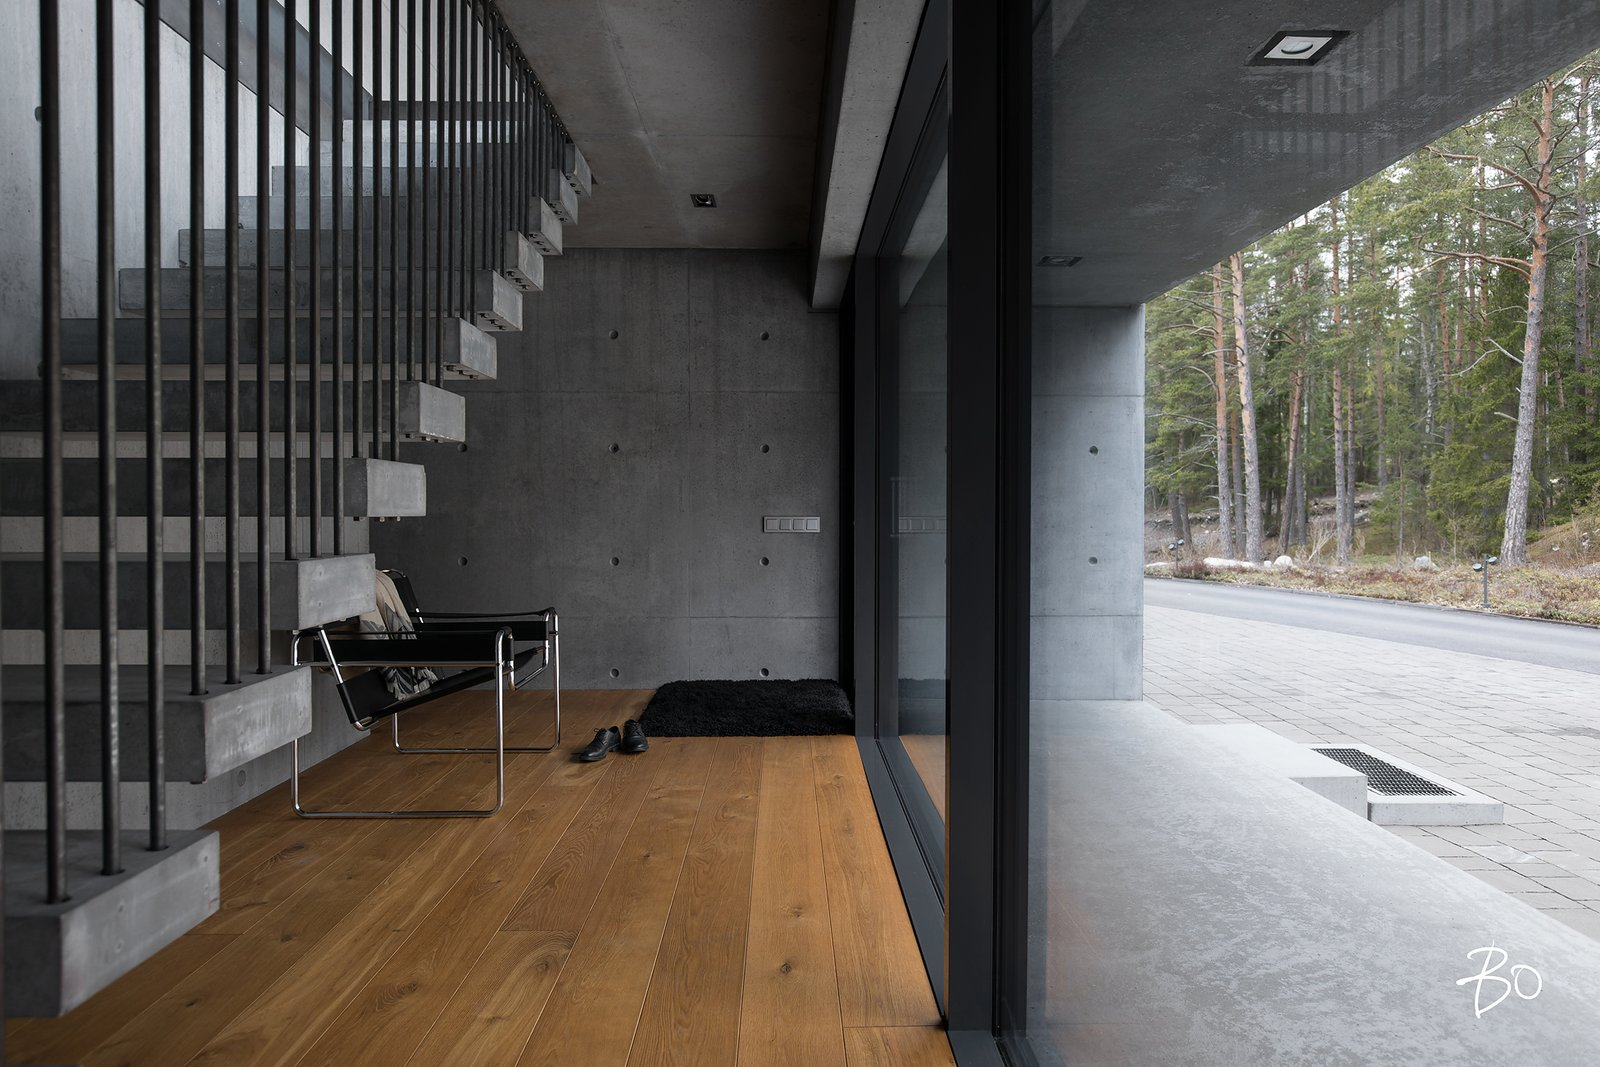 Ground floor entrance villAma by Kari Leino